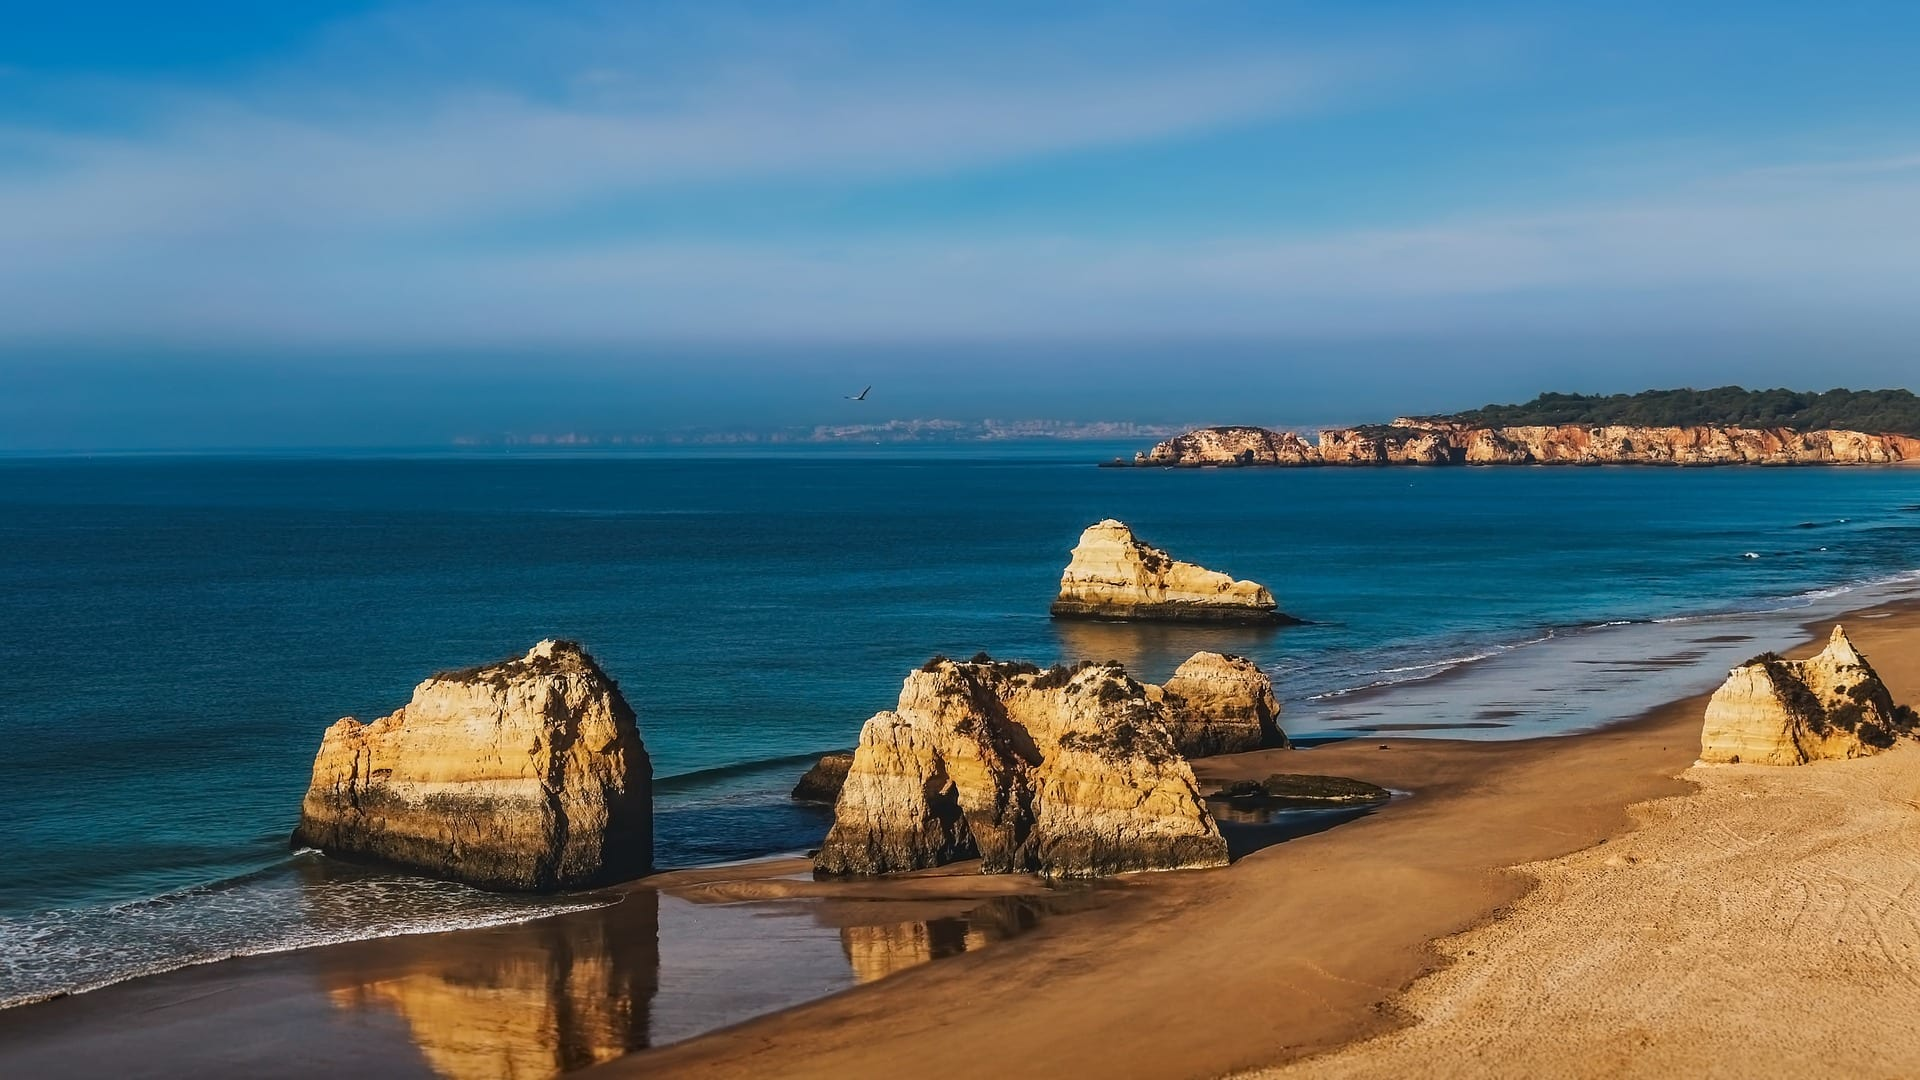 The Algarve of Portugal has some beautiful beaches to enjoy in winter